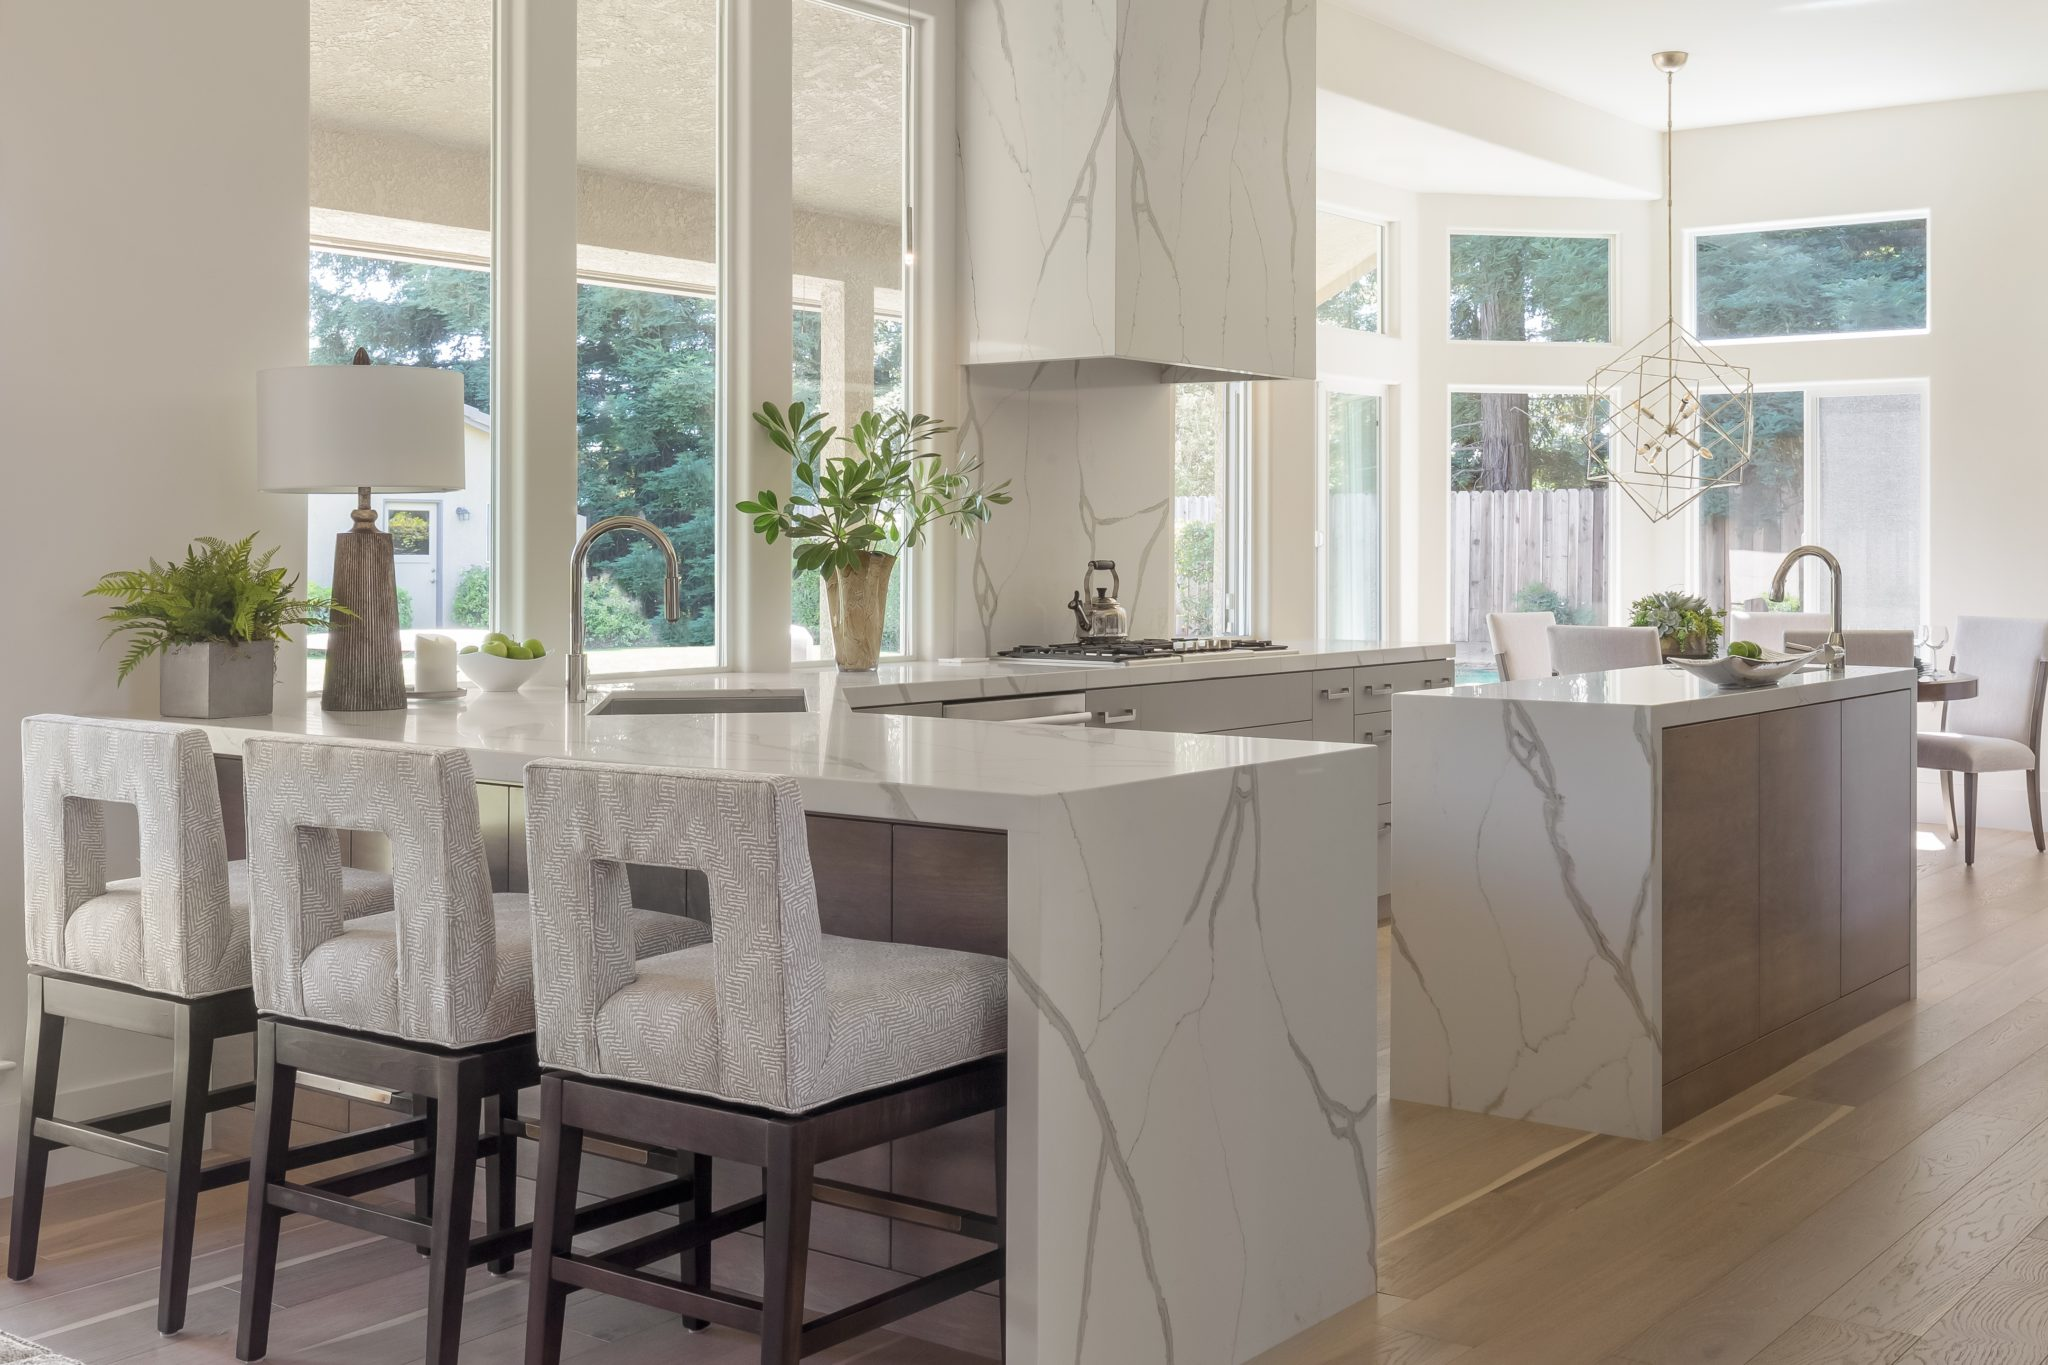 Contemporary Kitchen with windows surrounding, quartz hood, waterfall counters by Wendy Glaister Interiors